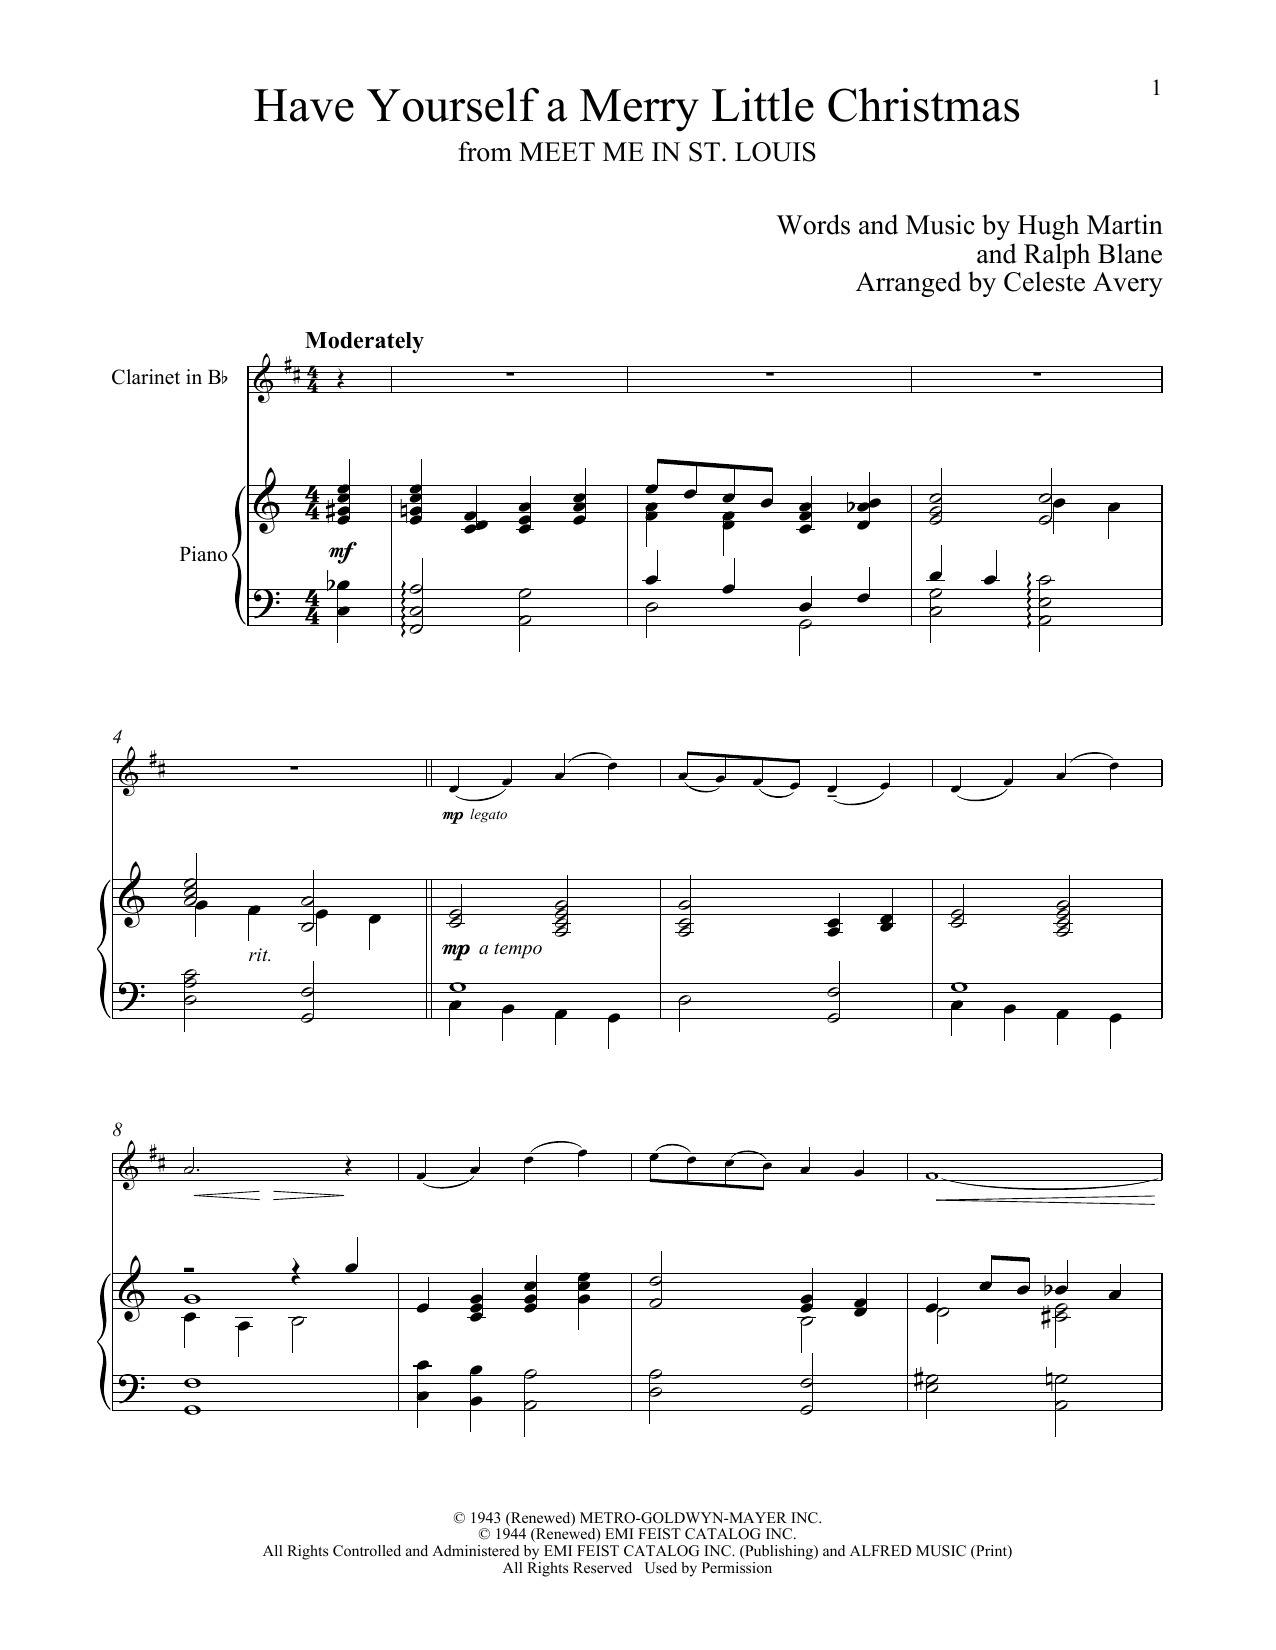 Have Yourself A Merry Little Christmas Piano Music.Sheet Music Digital Files To Print Licensed Ralph Blane